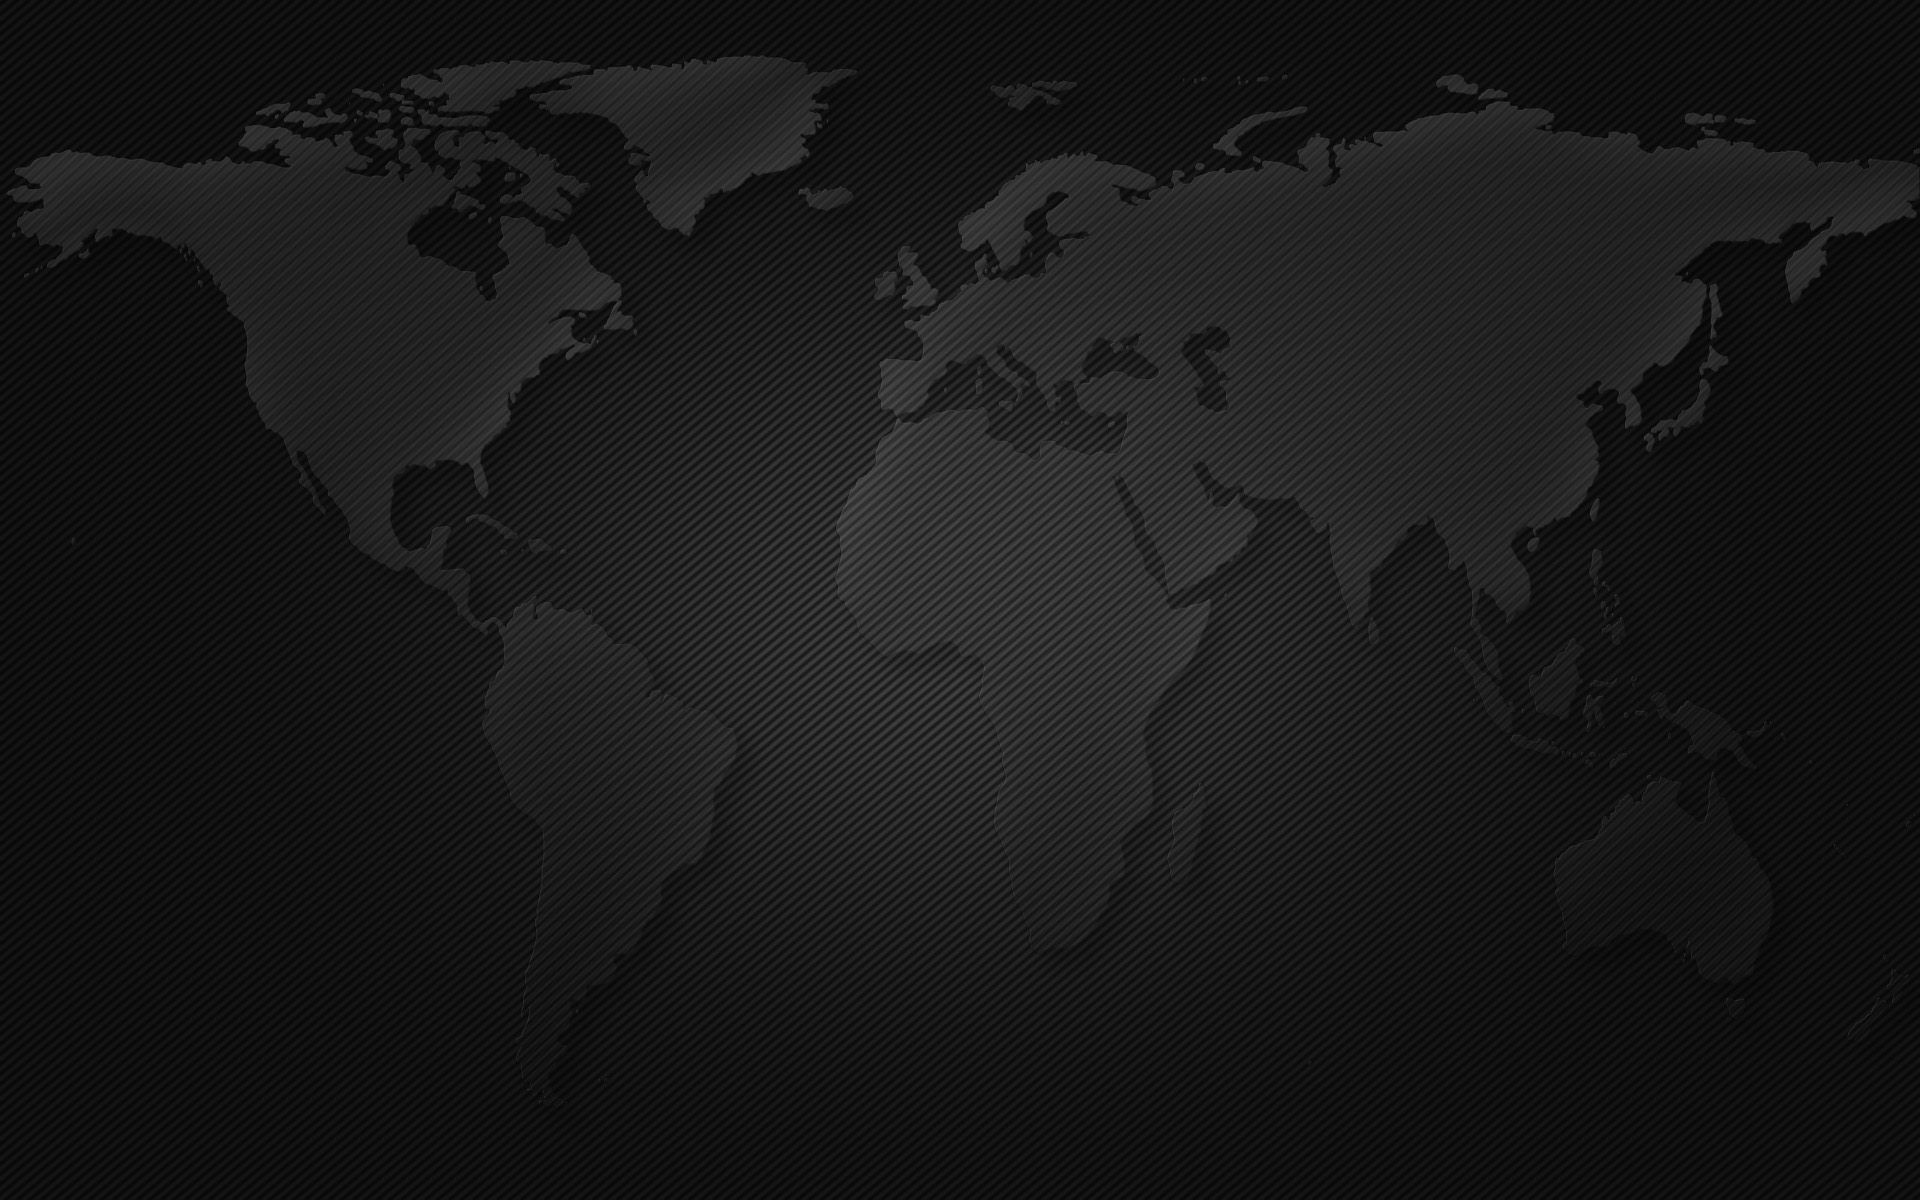 World map background download free stunning high resolution colorful gumiabroncs Images